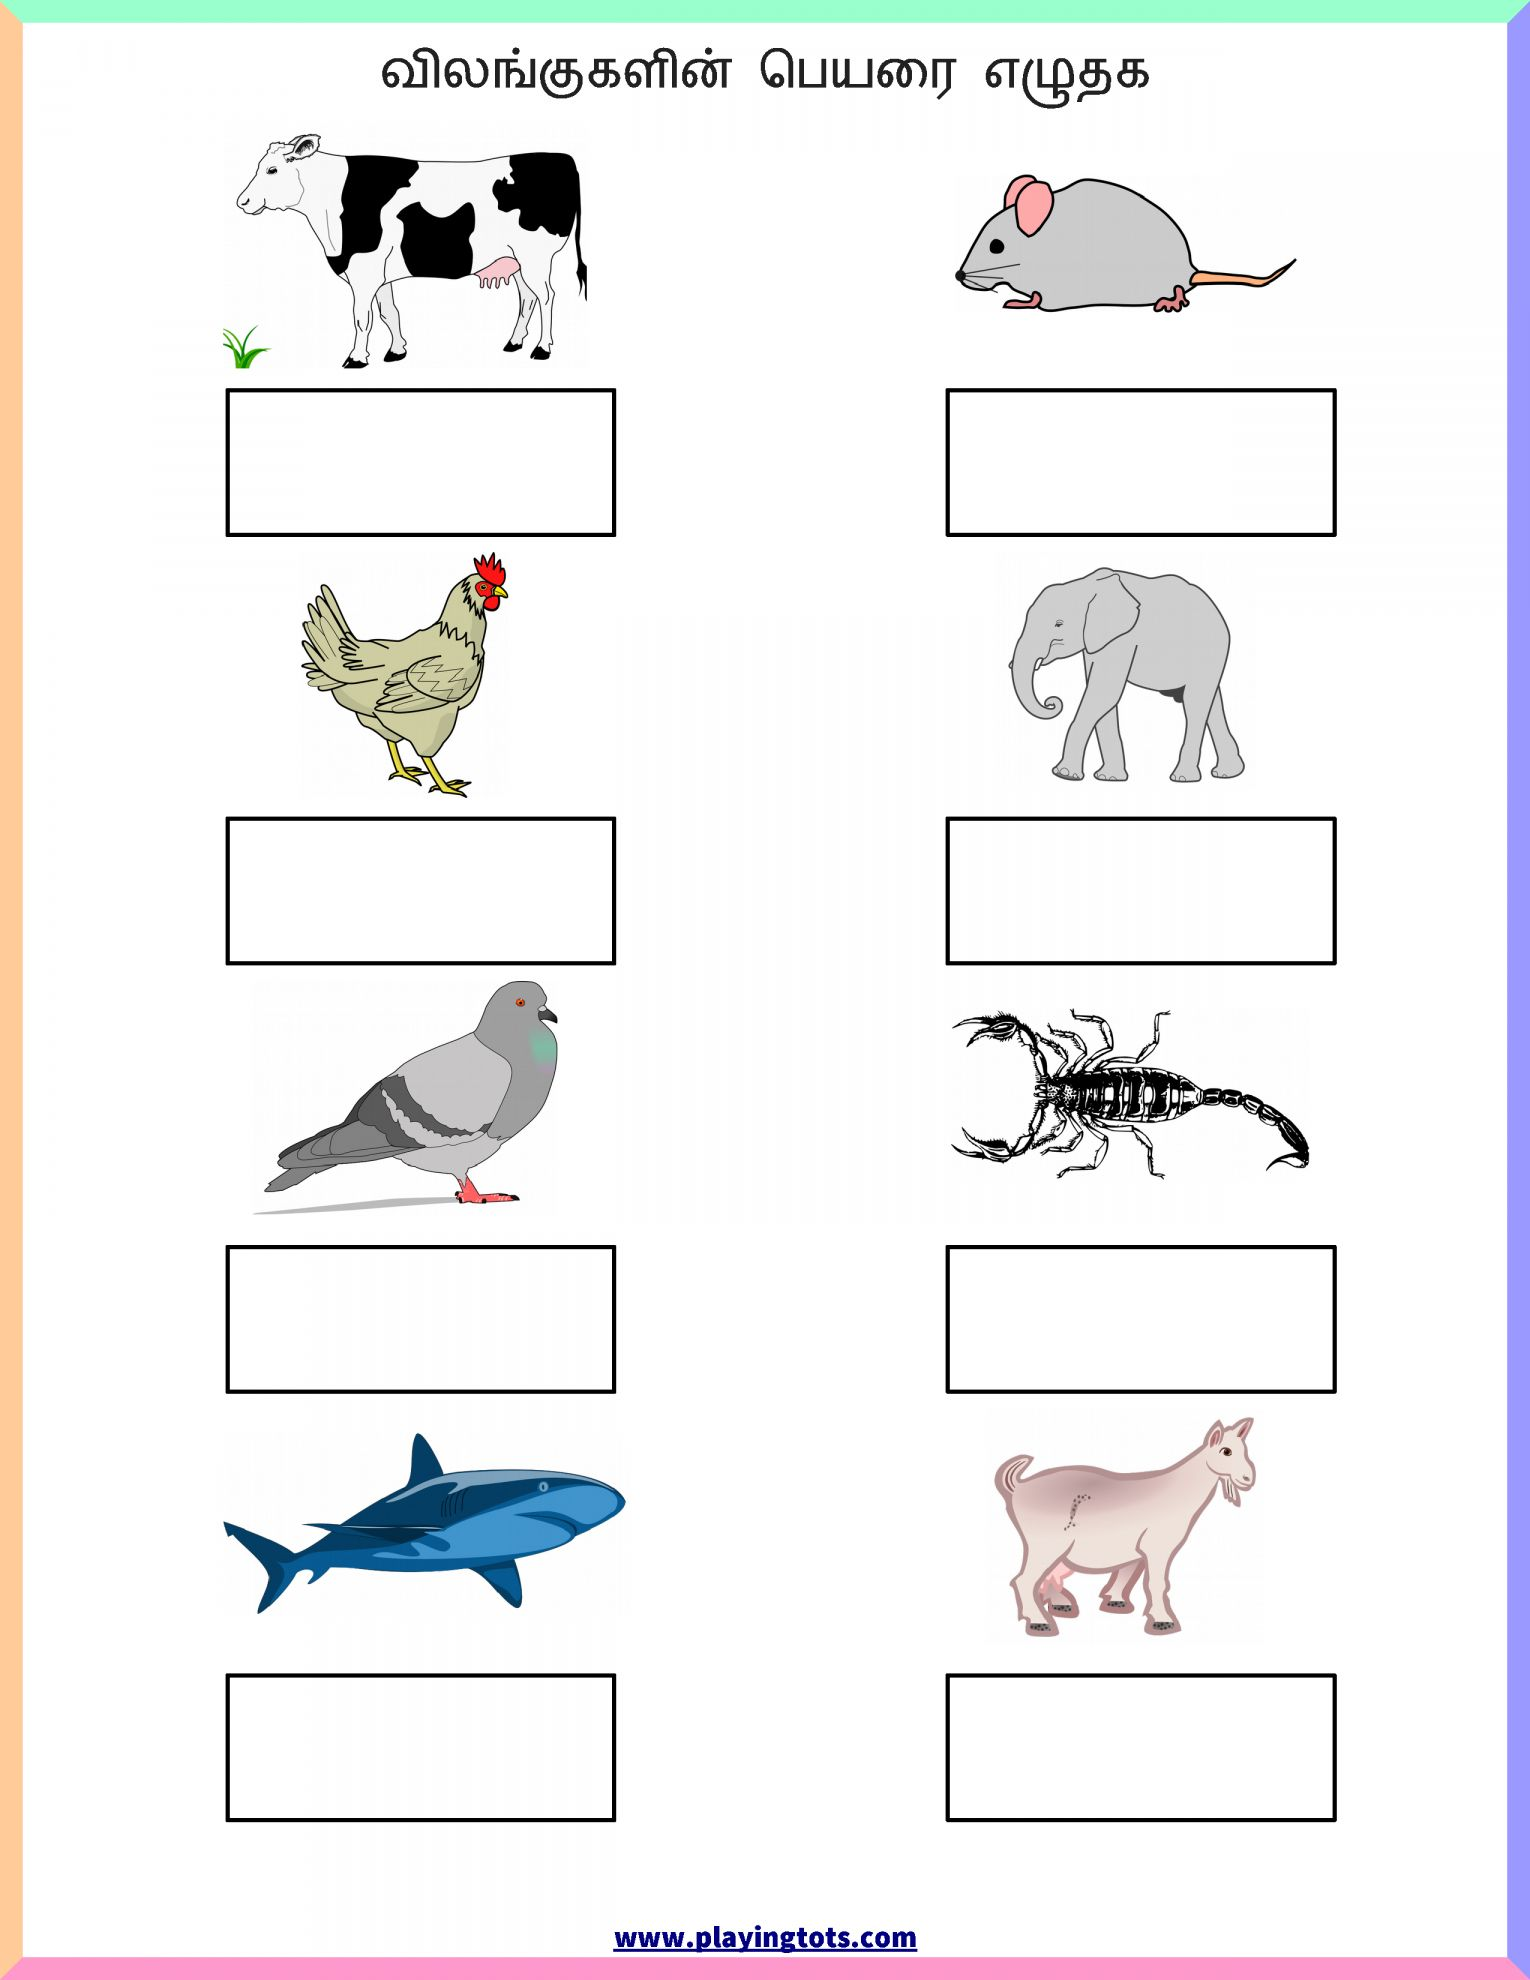 1st Grade Animal Classification Worksheet   Printable Worksheets and  Activities for Teachers [ 1980 x 1530 Pixel ]